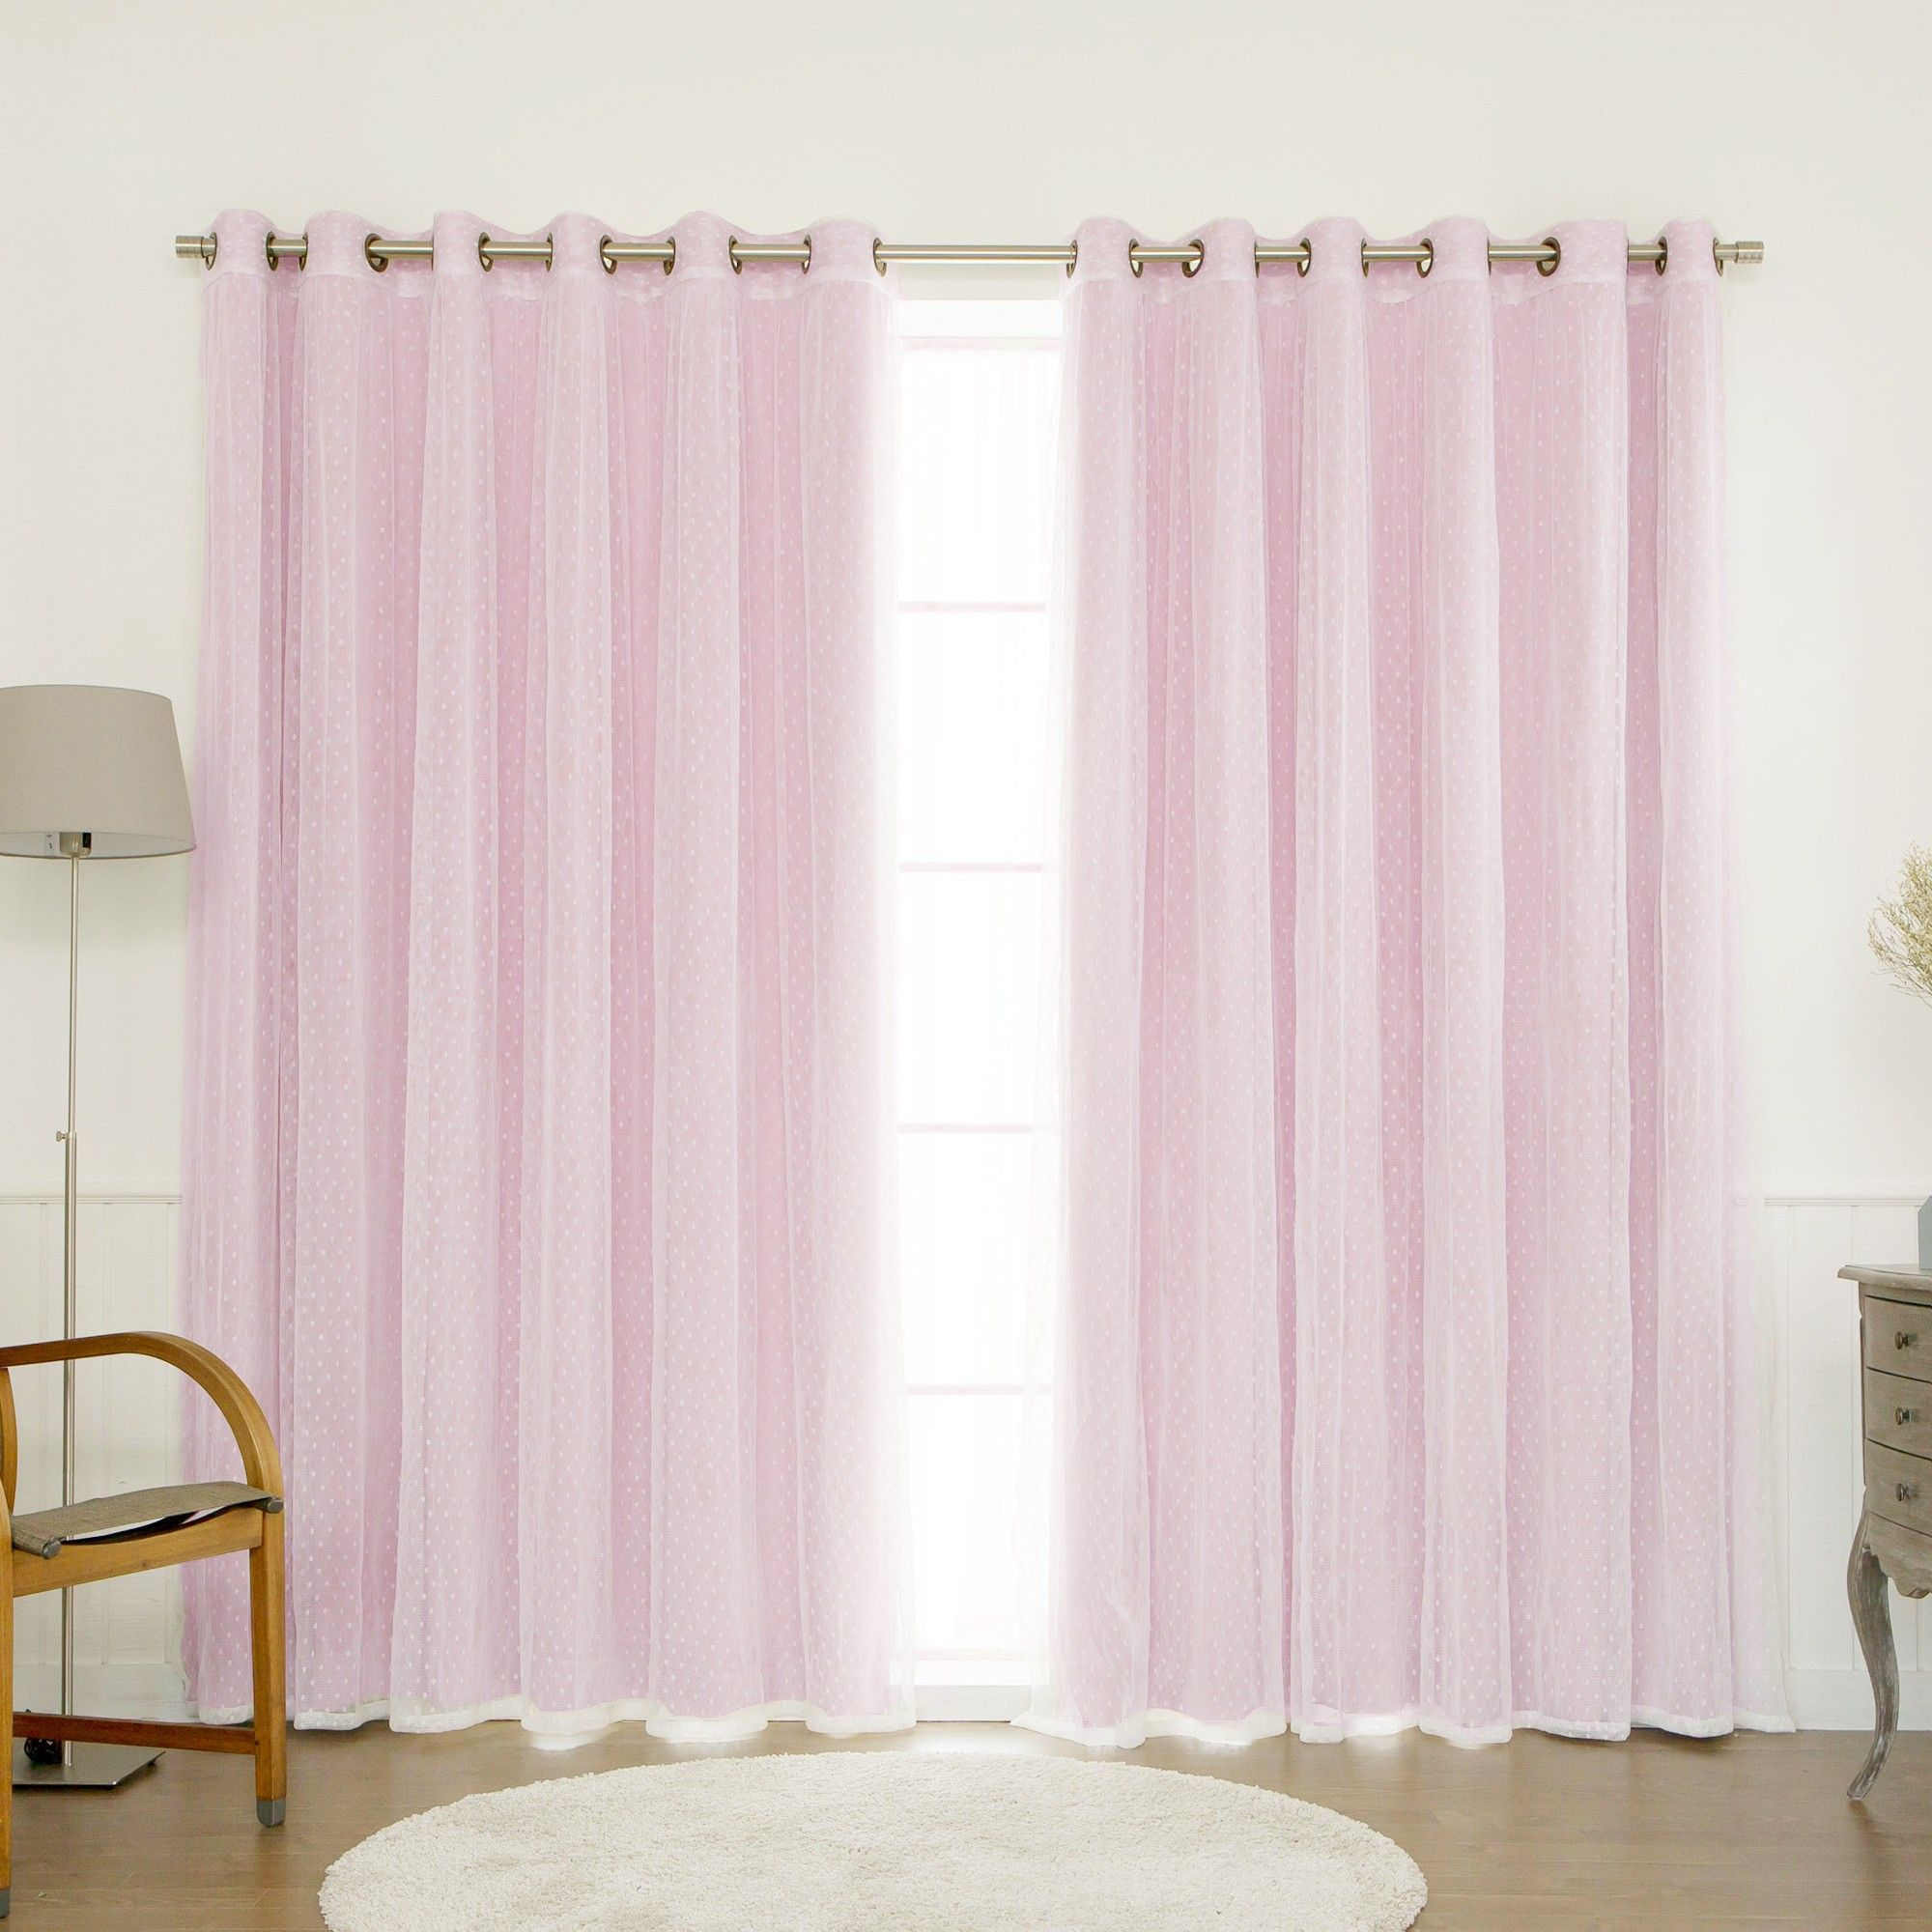 bay treatment small tag size double ideas shocking silver curtain with window seat ledge curtains tags of treatments windows bow rod for full